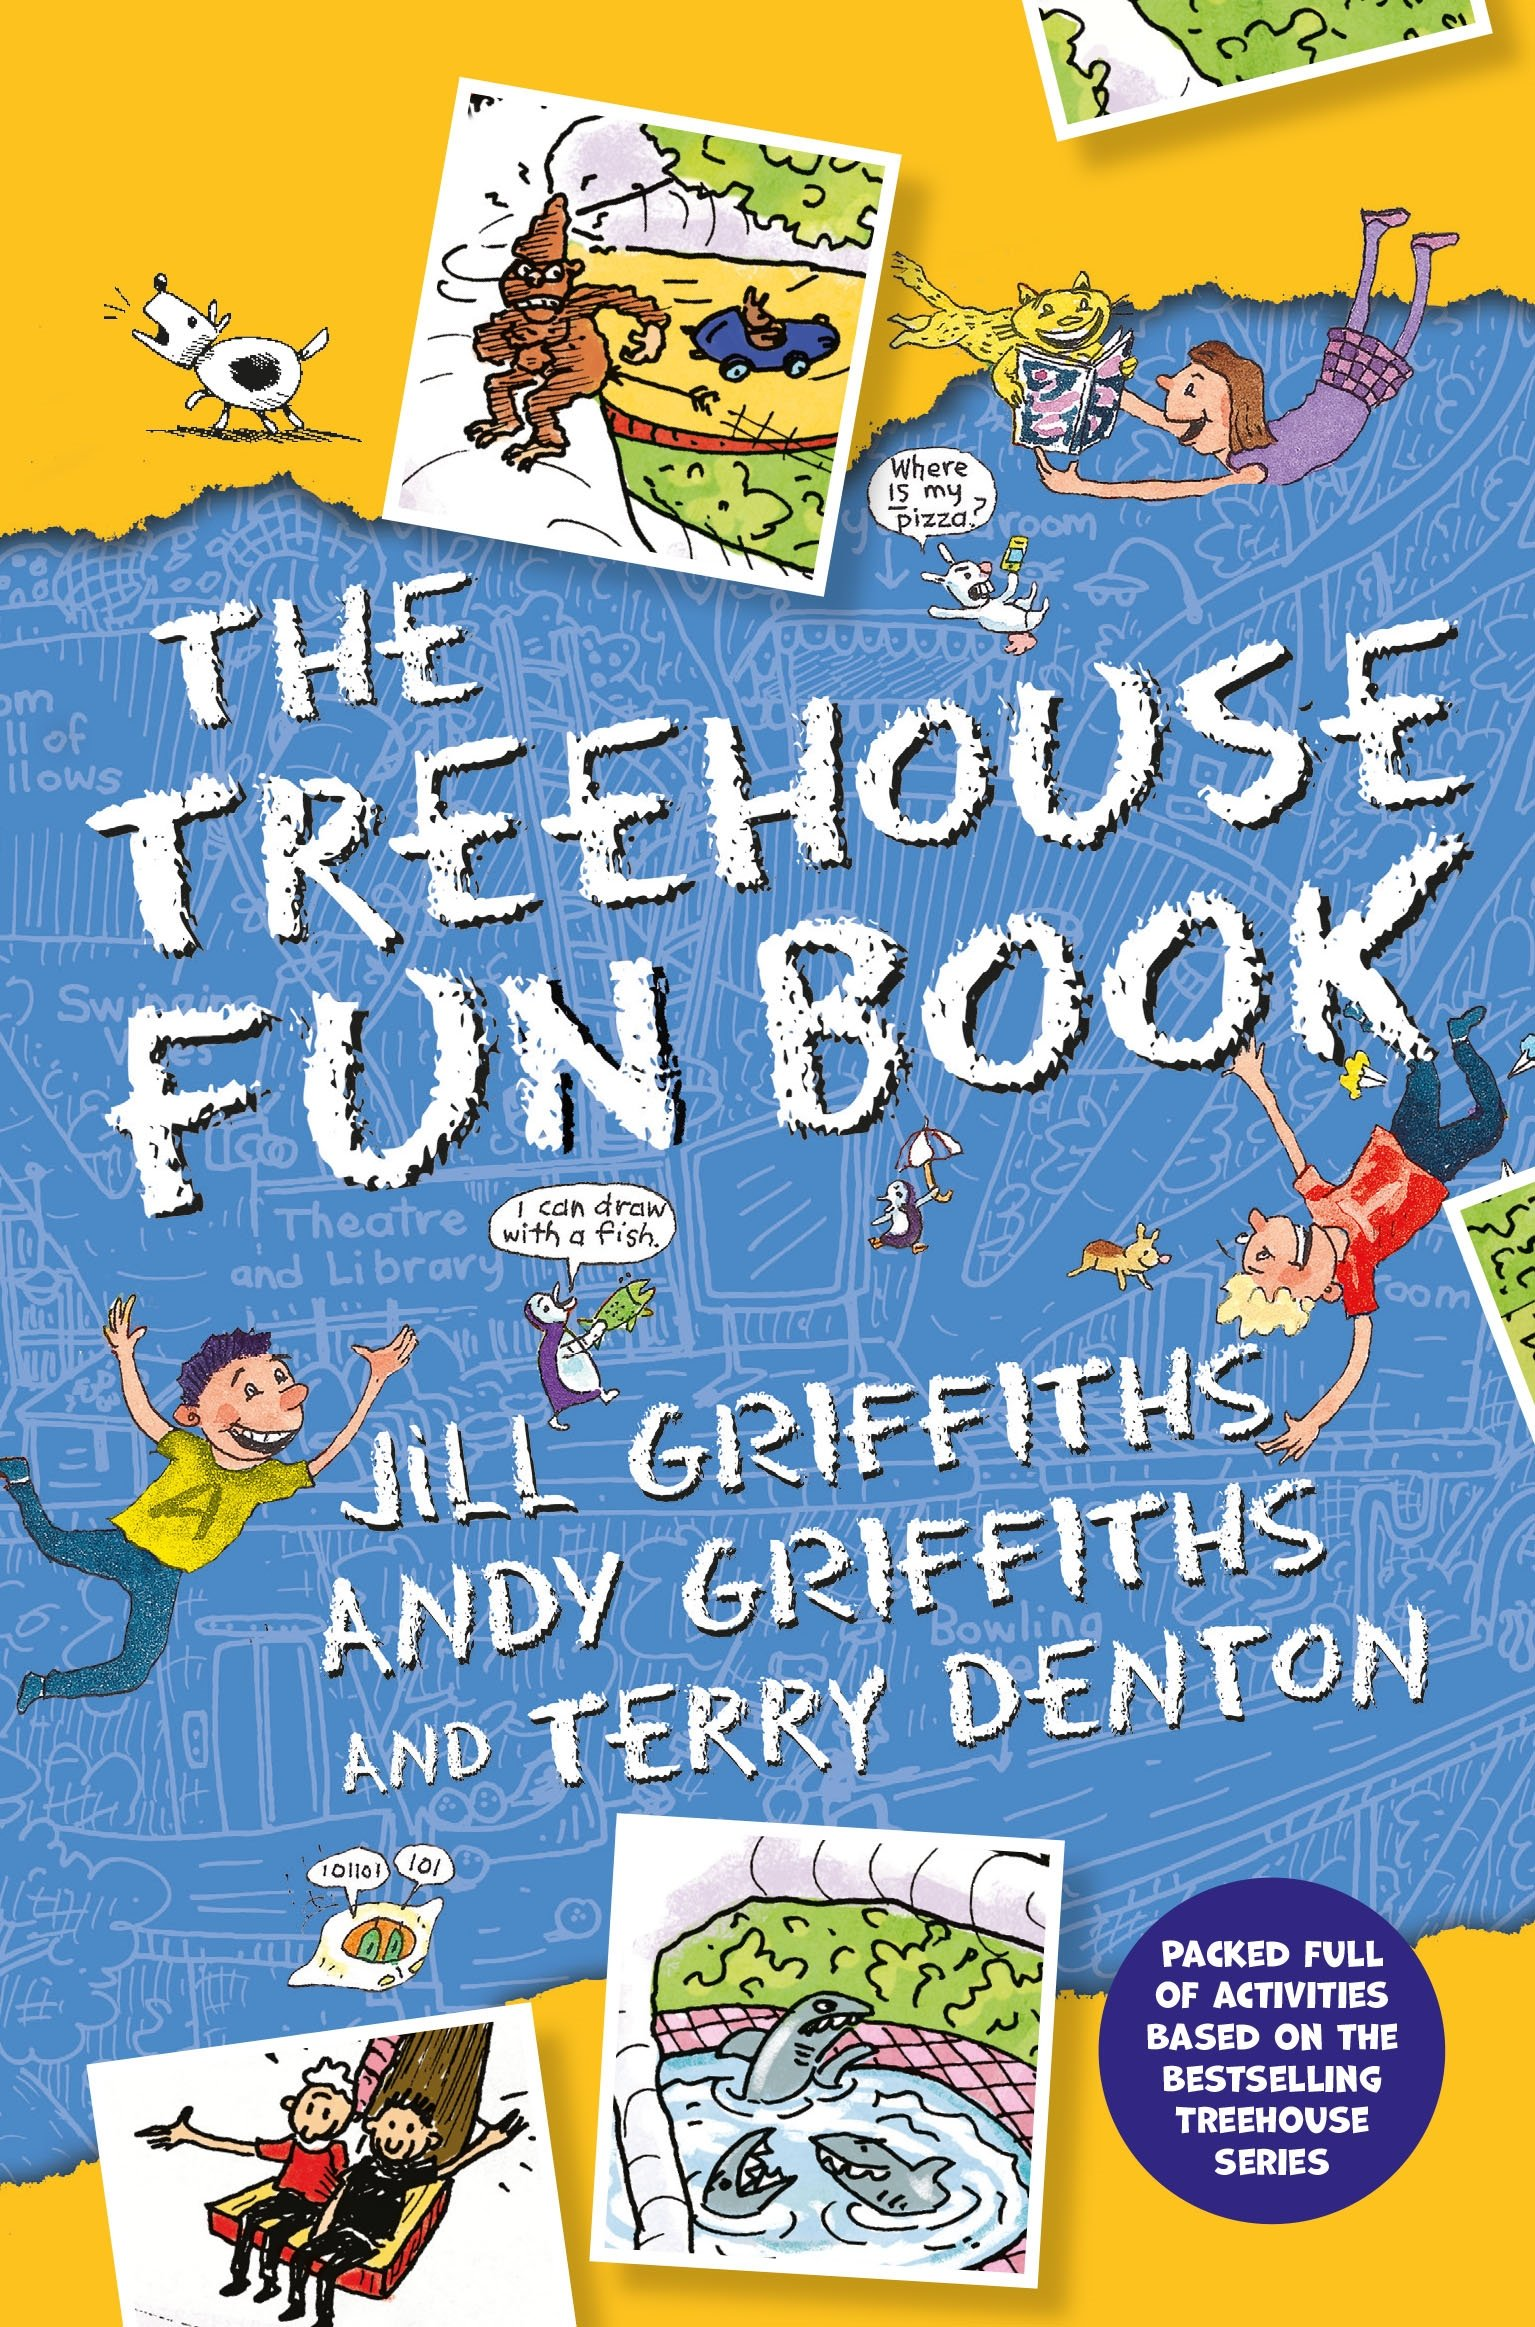 Andy Griffiths Treehouse Part - 35: The Treehouse Fun Book: Amazon.co.uk: Andy Griffiths: 9781509848546: Books